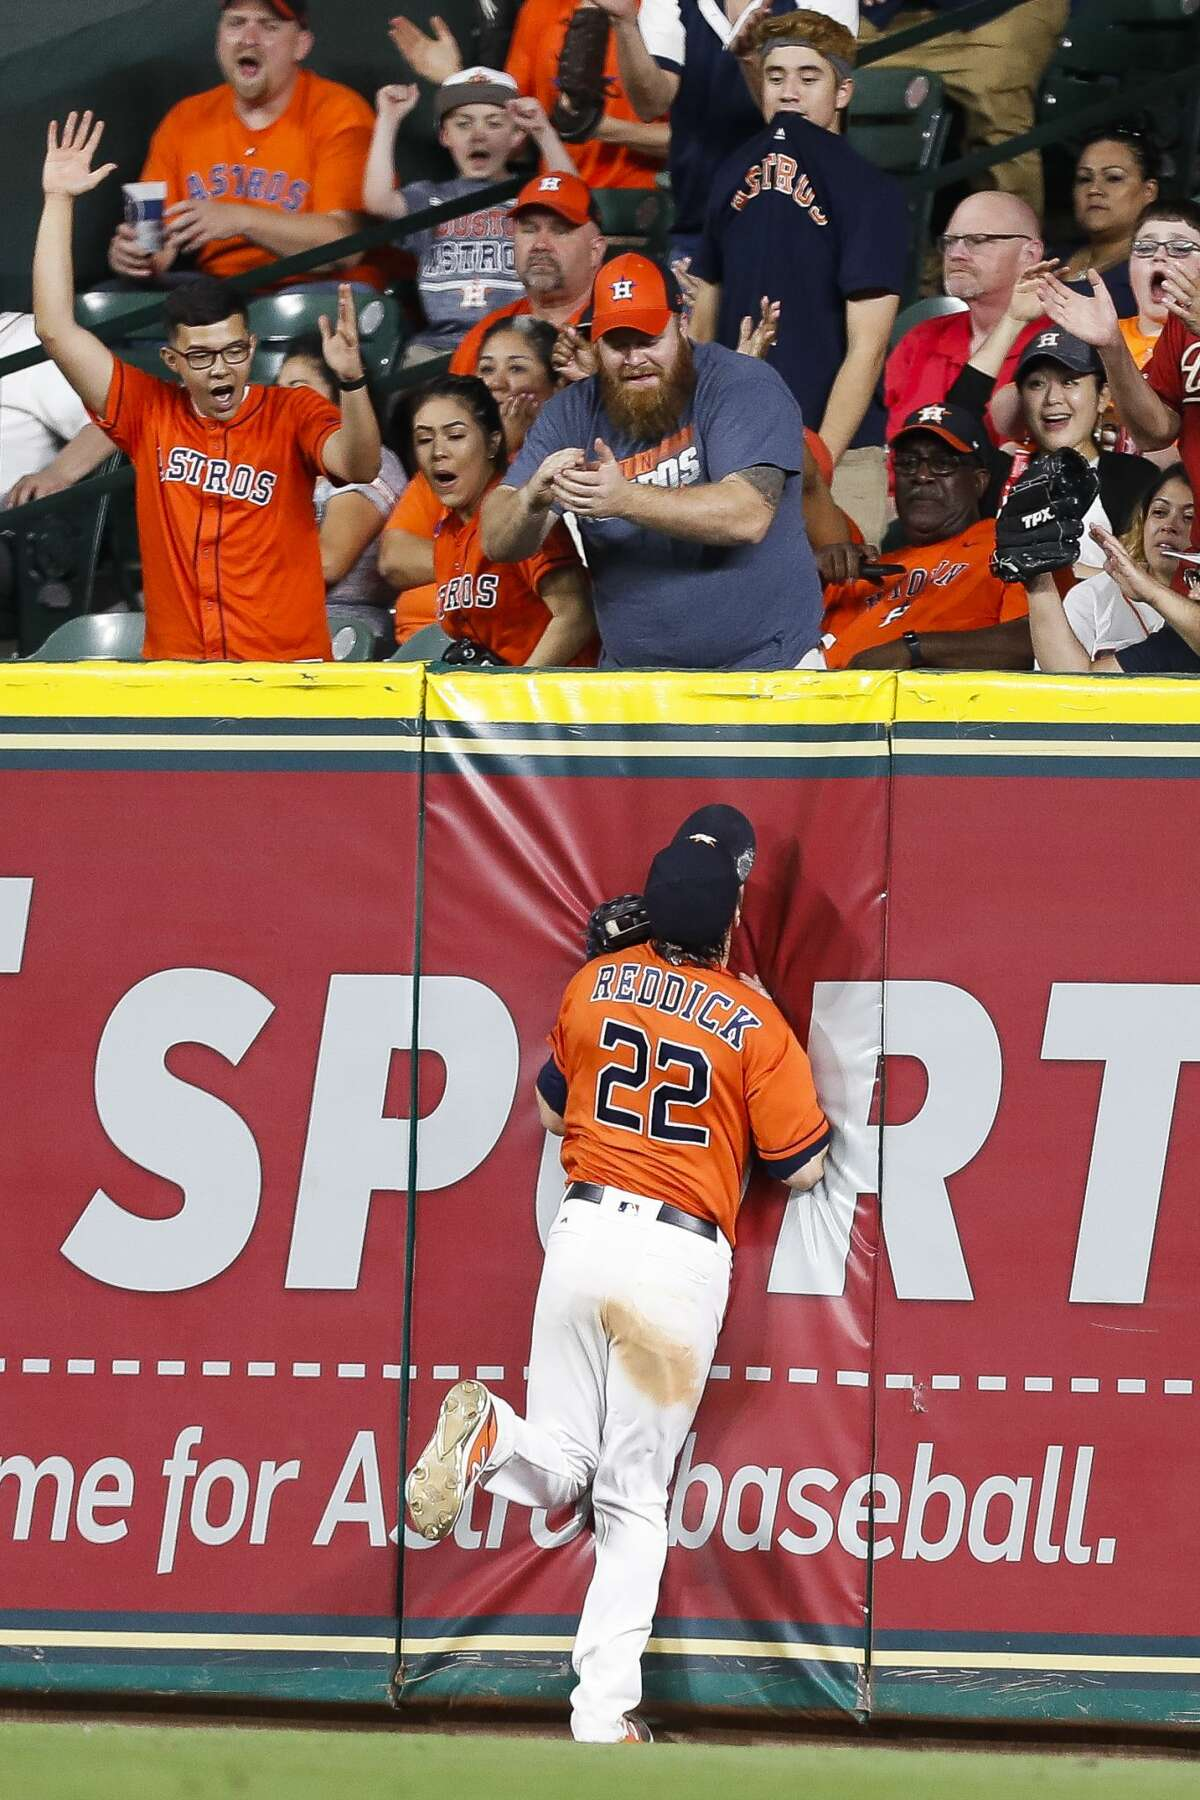 Houston Astros left fielder Josh Reddick (22) catches a fly ball to get the third out with two runners on base during the eighth inning as the Houston Astros take on the Oakland Athletics at Minute Maid Park Friday, April 28, 2017 in Houston. ( Michael Ciaglo / Houston Chronicle)